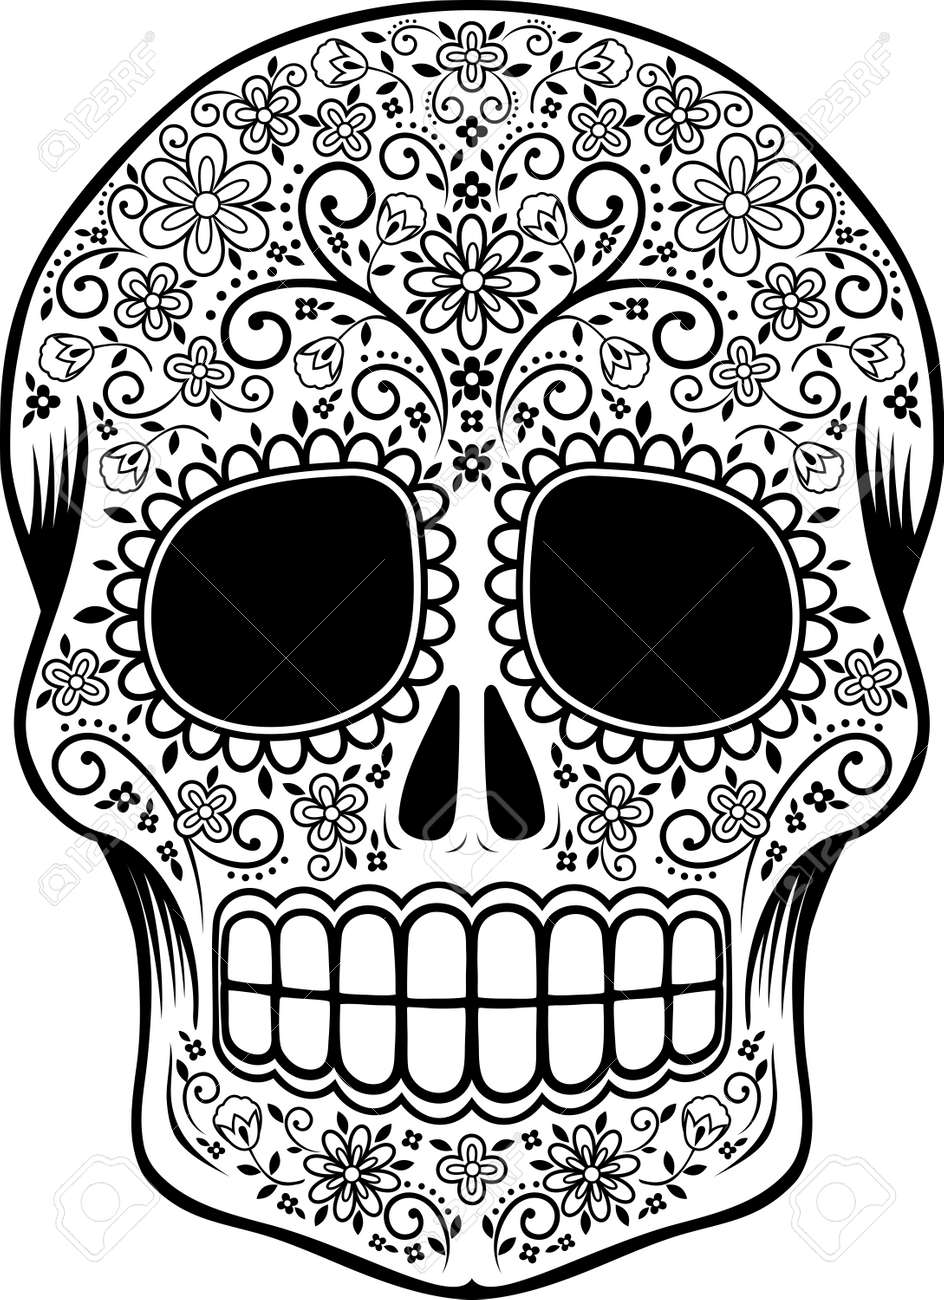 - Mexican Sugar Skull With Flowers And Design Elements Isolated